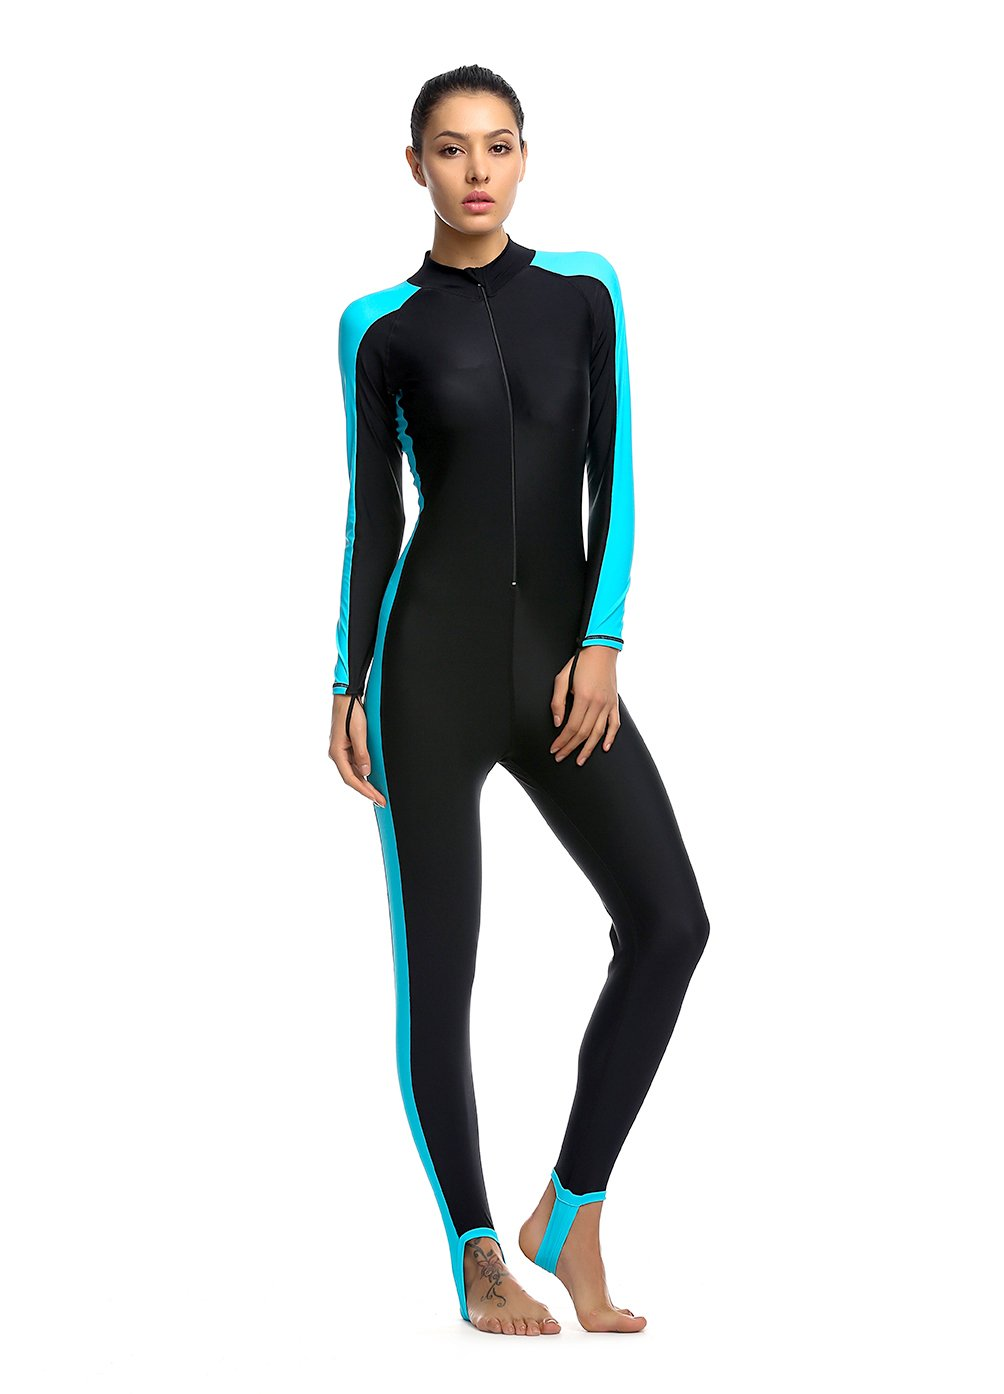 Women Fitness Full Length Wetsuit Surfing Suit One Piece Long Sleeve  JumpSuit Surfing Diving Bodyboarding c480b9224